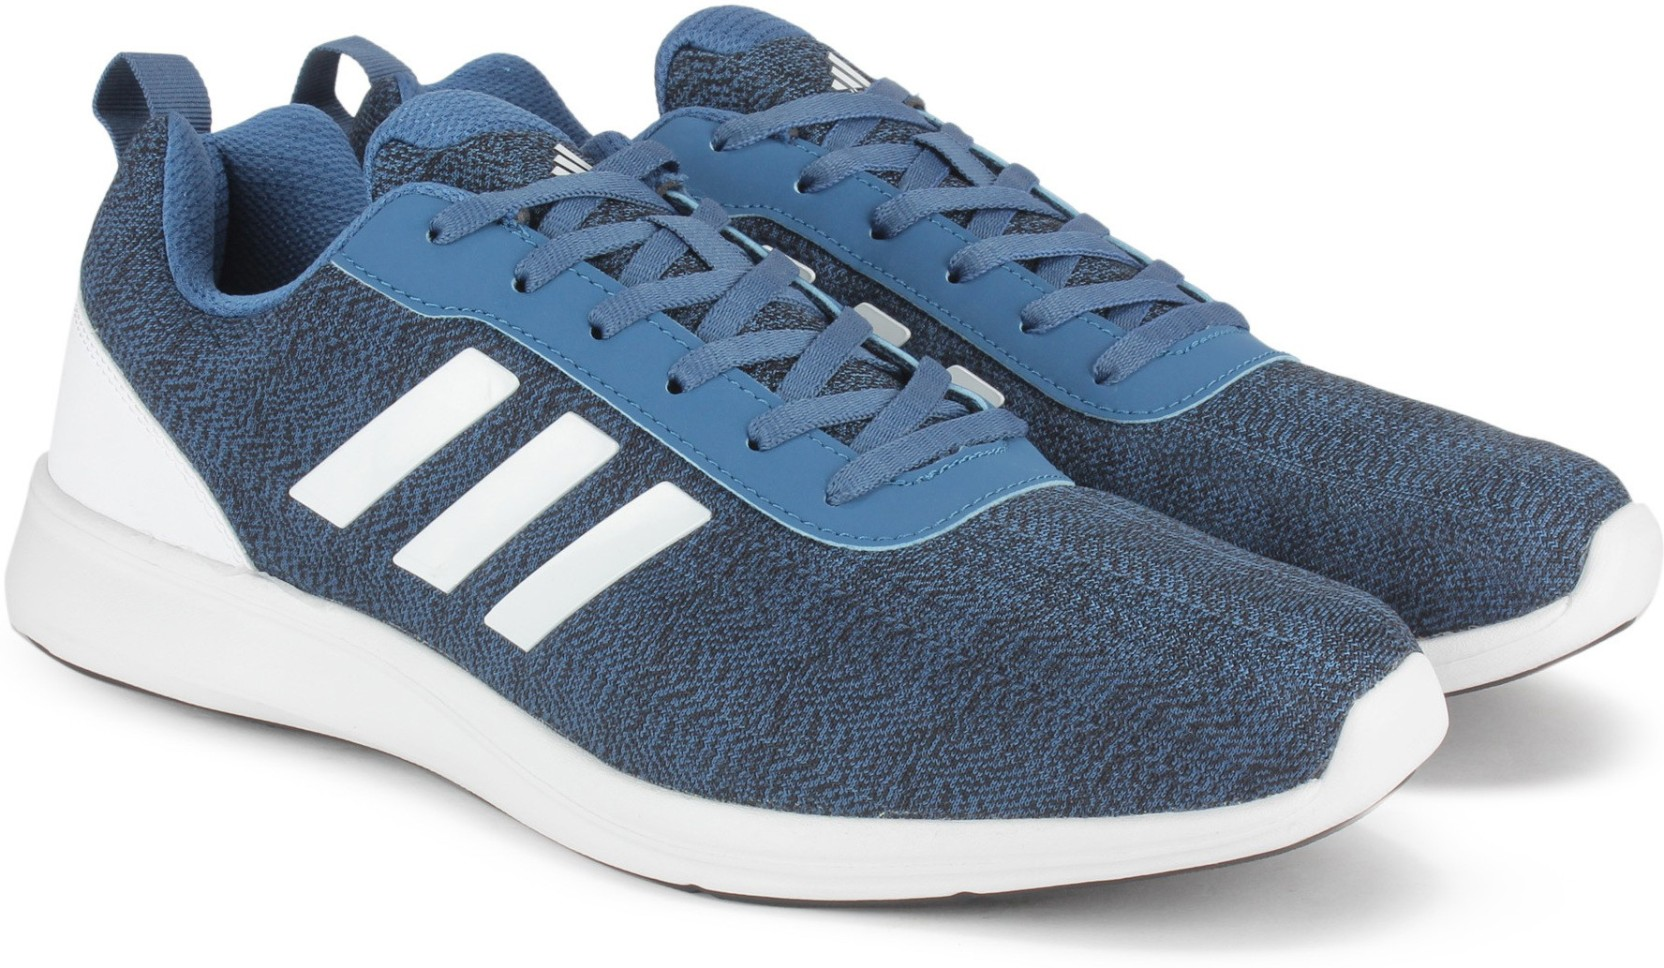 Adidas Shoes India Flipkart